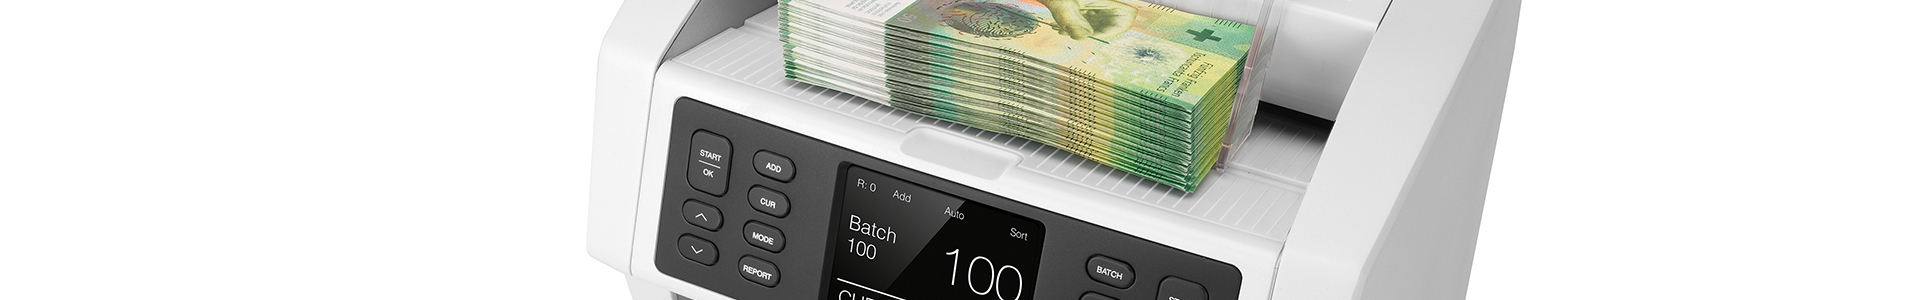 Safescan Banknote Counters